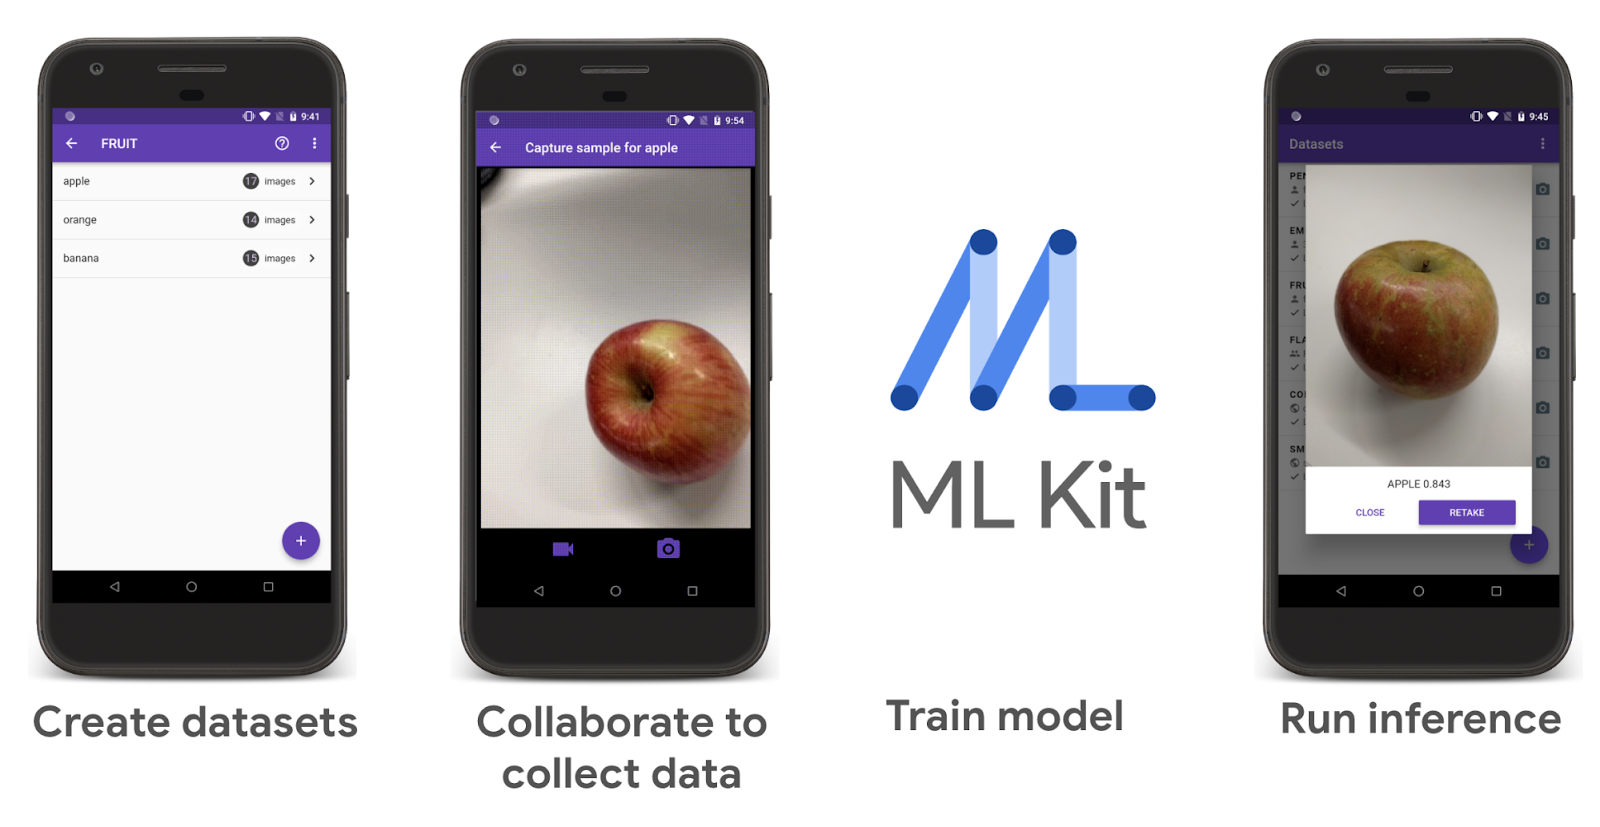 Flutter ML Kit: membuat set data, kolaborasi mengumpulkan data, melatih model, menjalankan inferensi